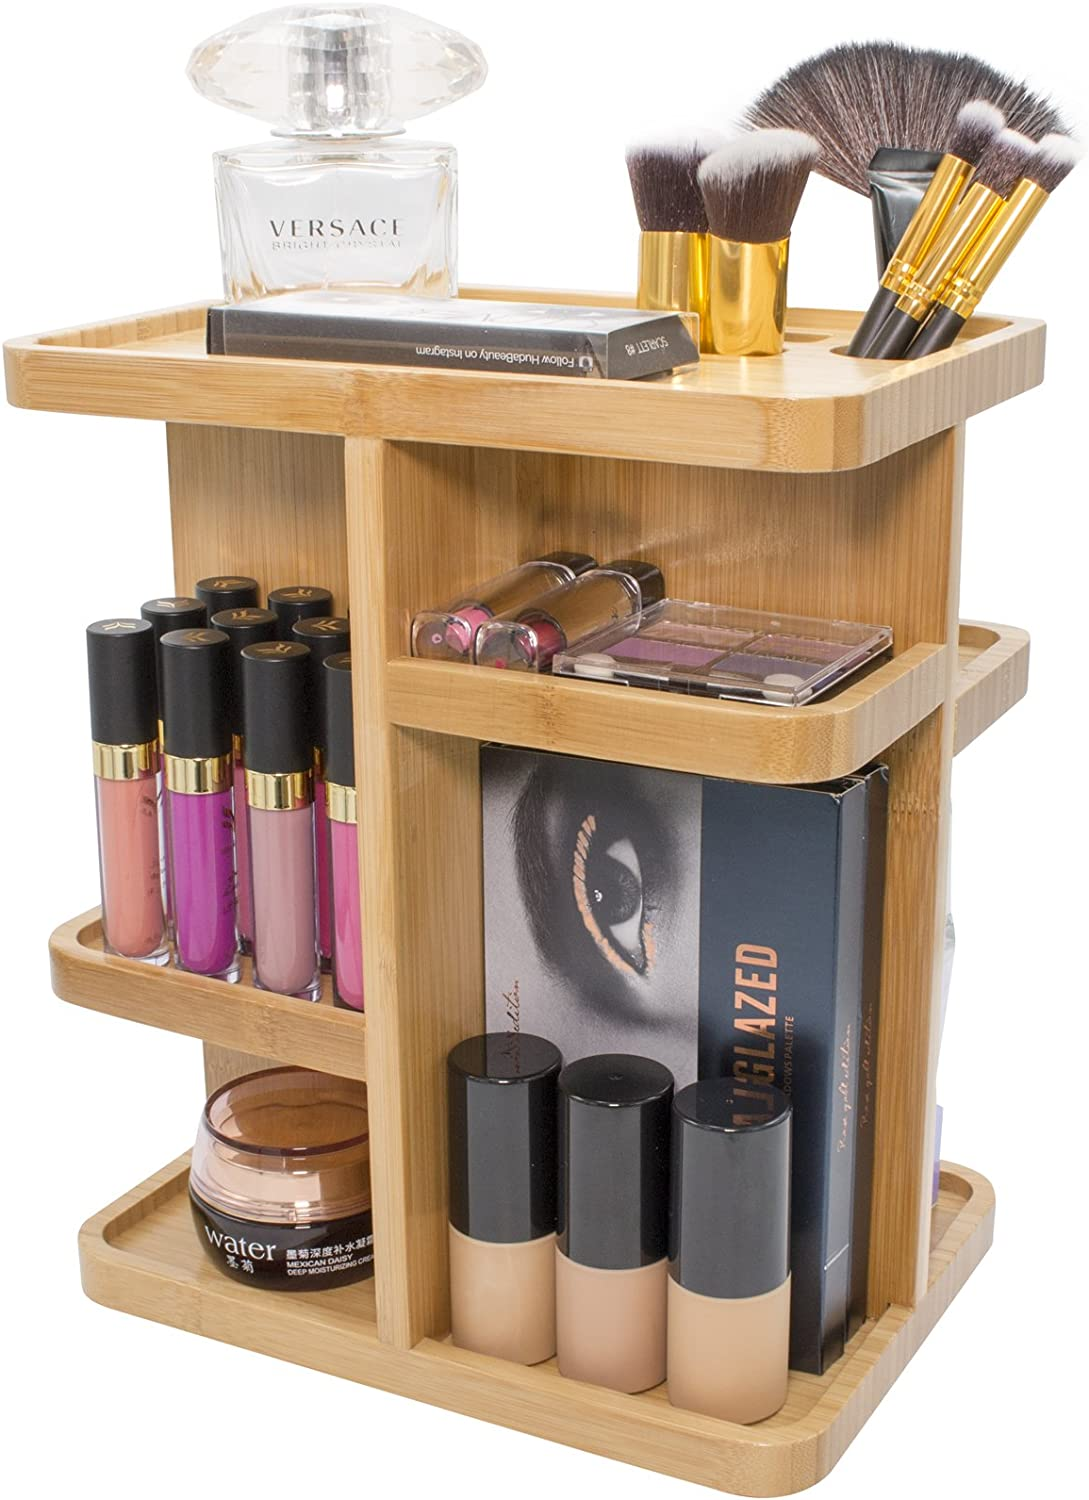 Sorbus 47° Bamboo Cosmetic Organizer, Multi-Function Storage Carousel for  Makeup, Toiletries, and More — Great for Vanity, Desk, Bathroom, Bedroom,